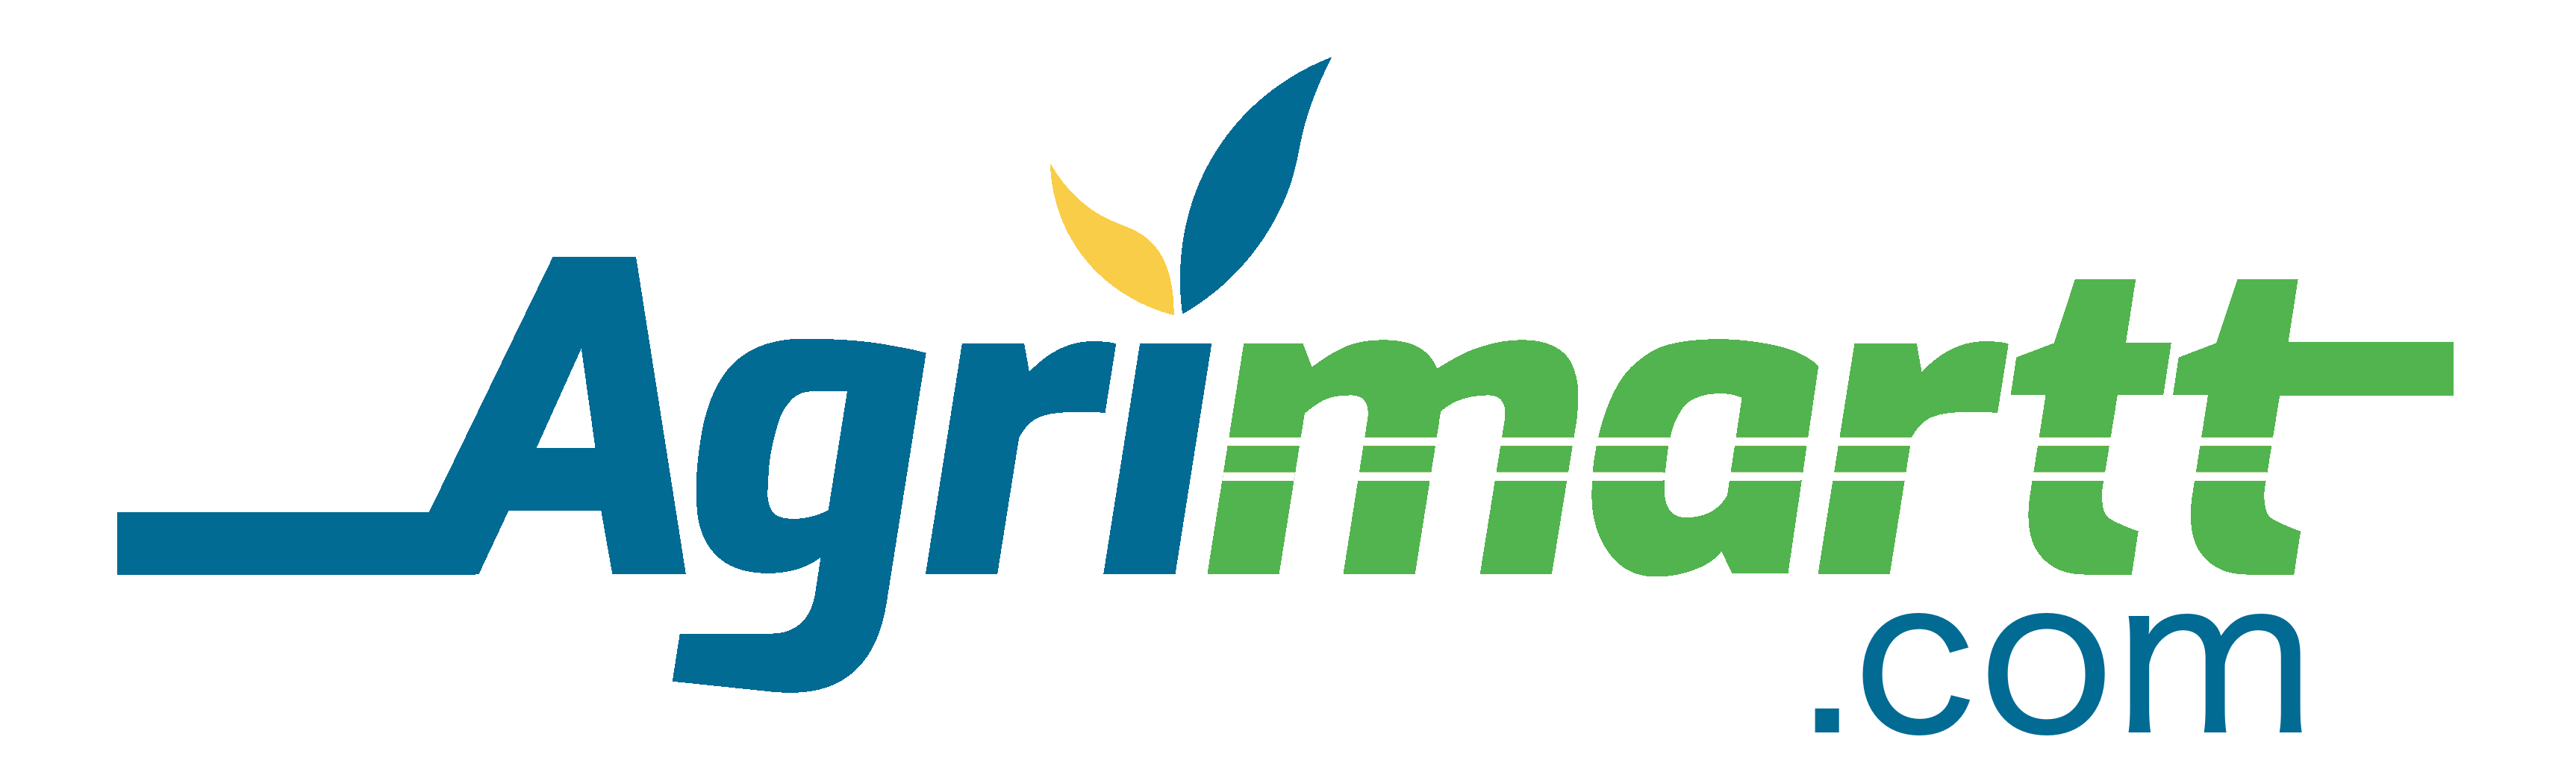 Agrimartt-websitet